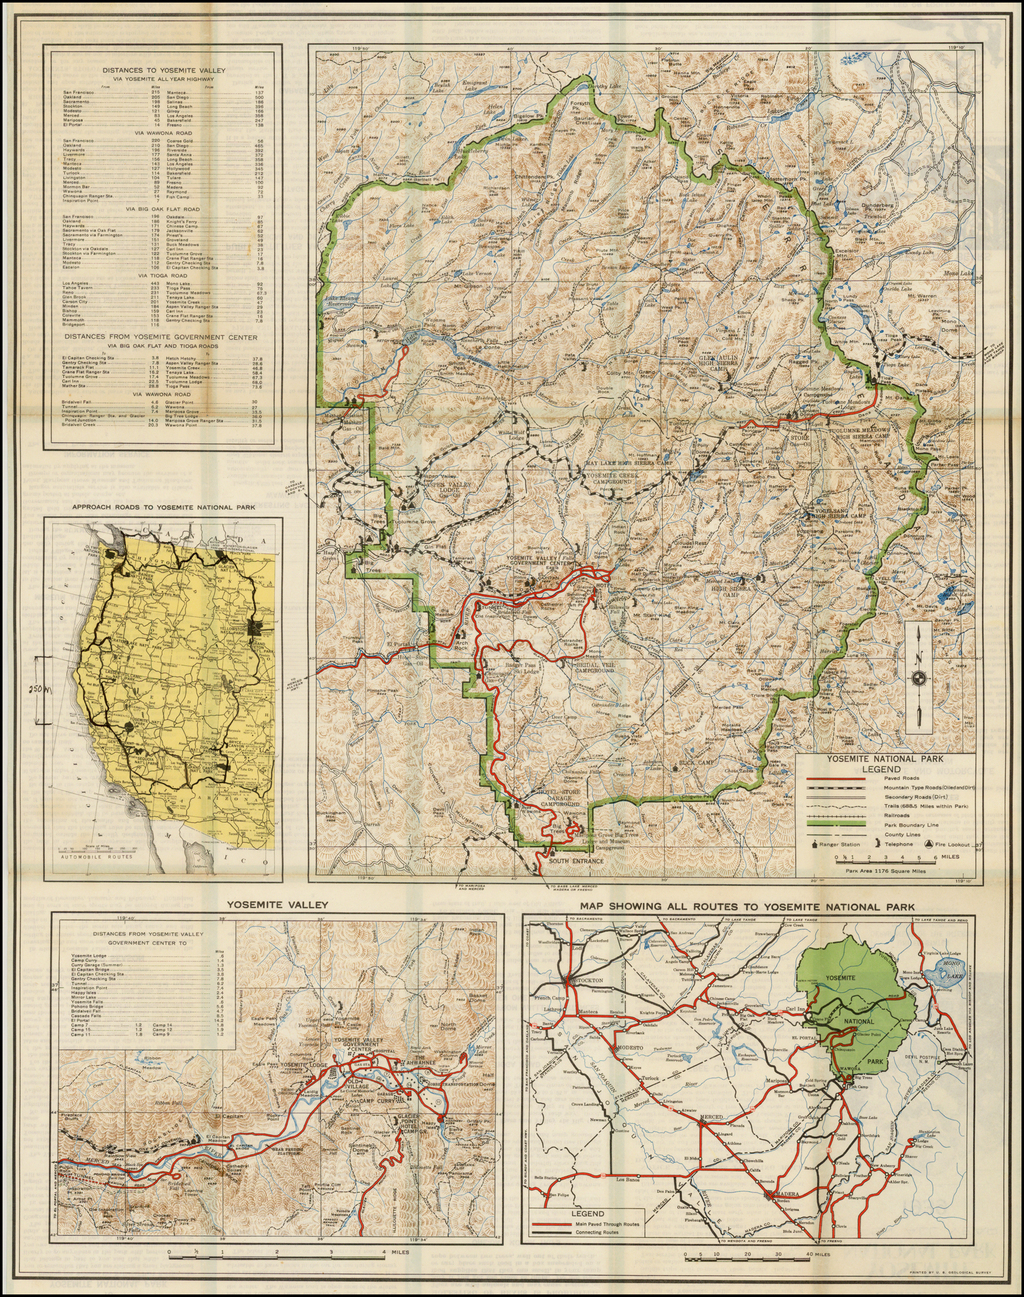 Guide Map Yosemite National Park . . . 1939 By United States Department of the Interior